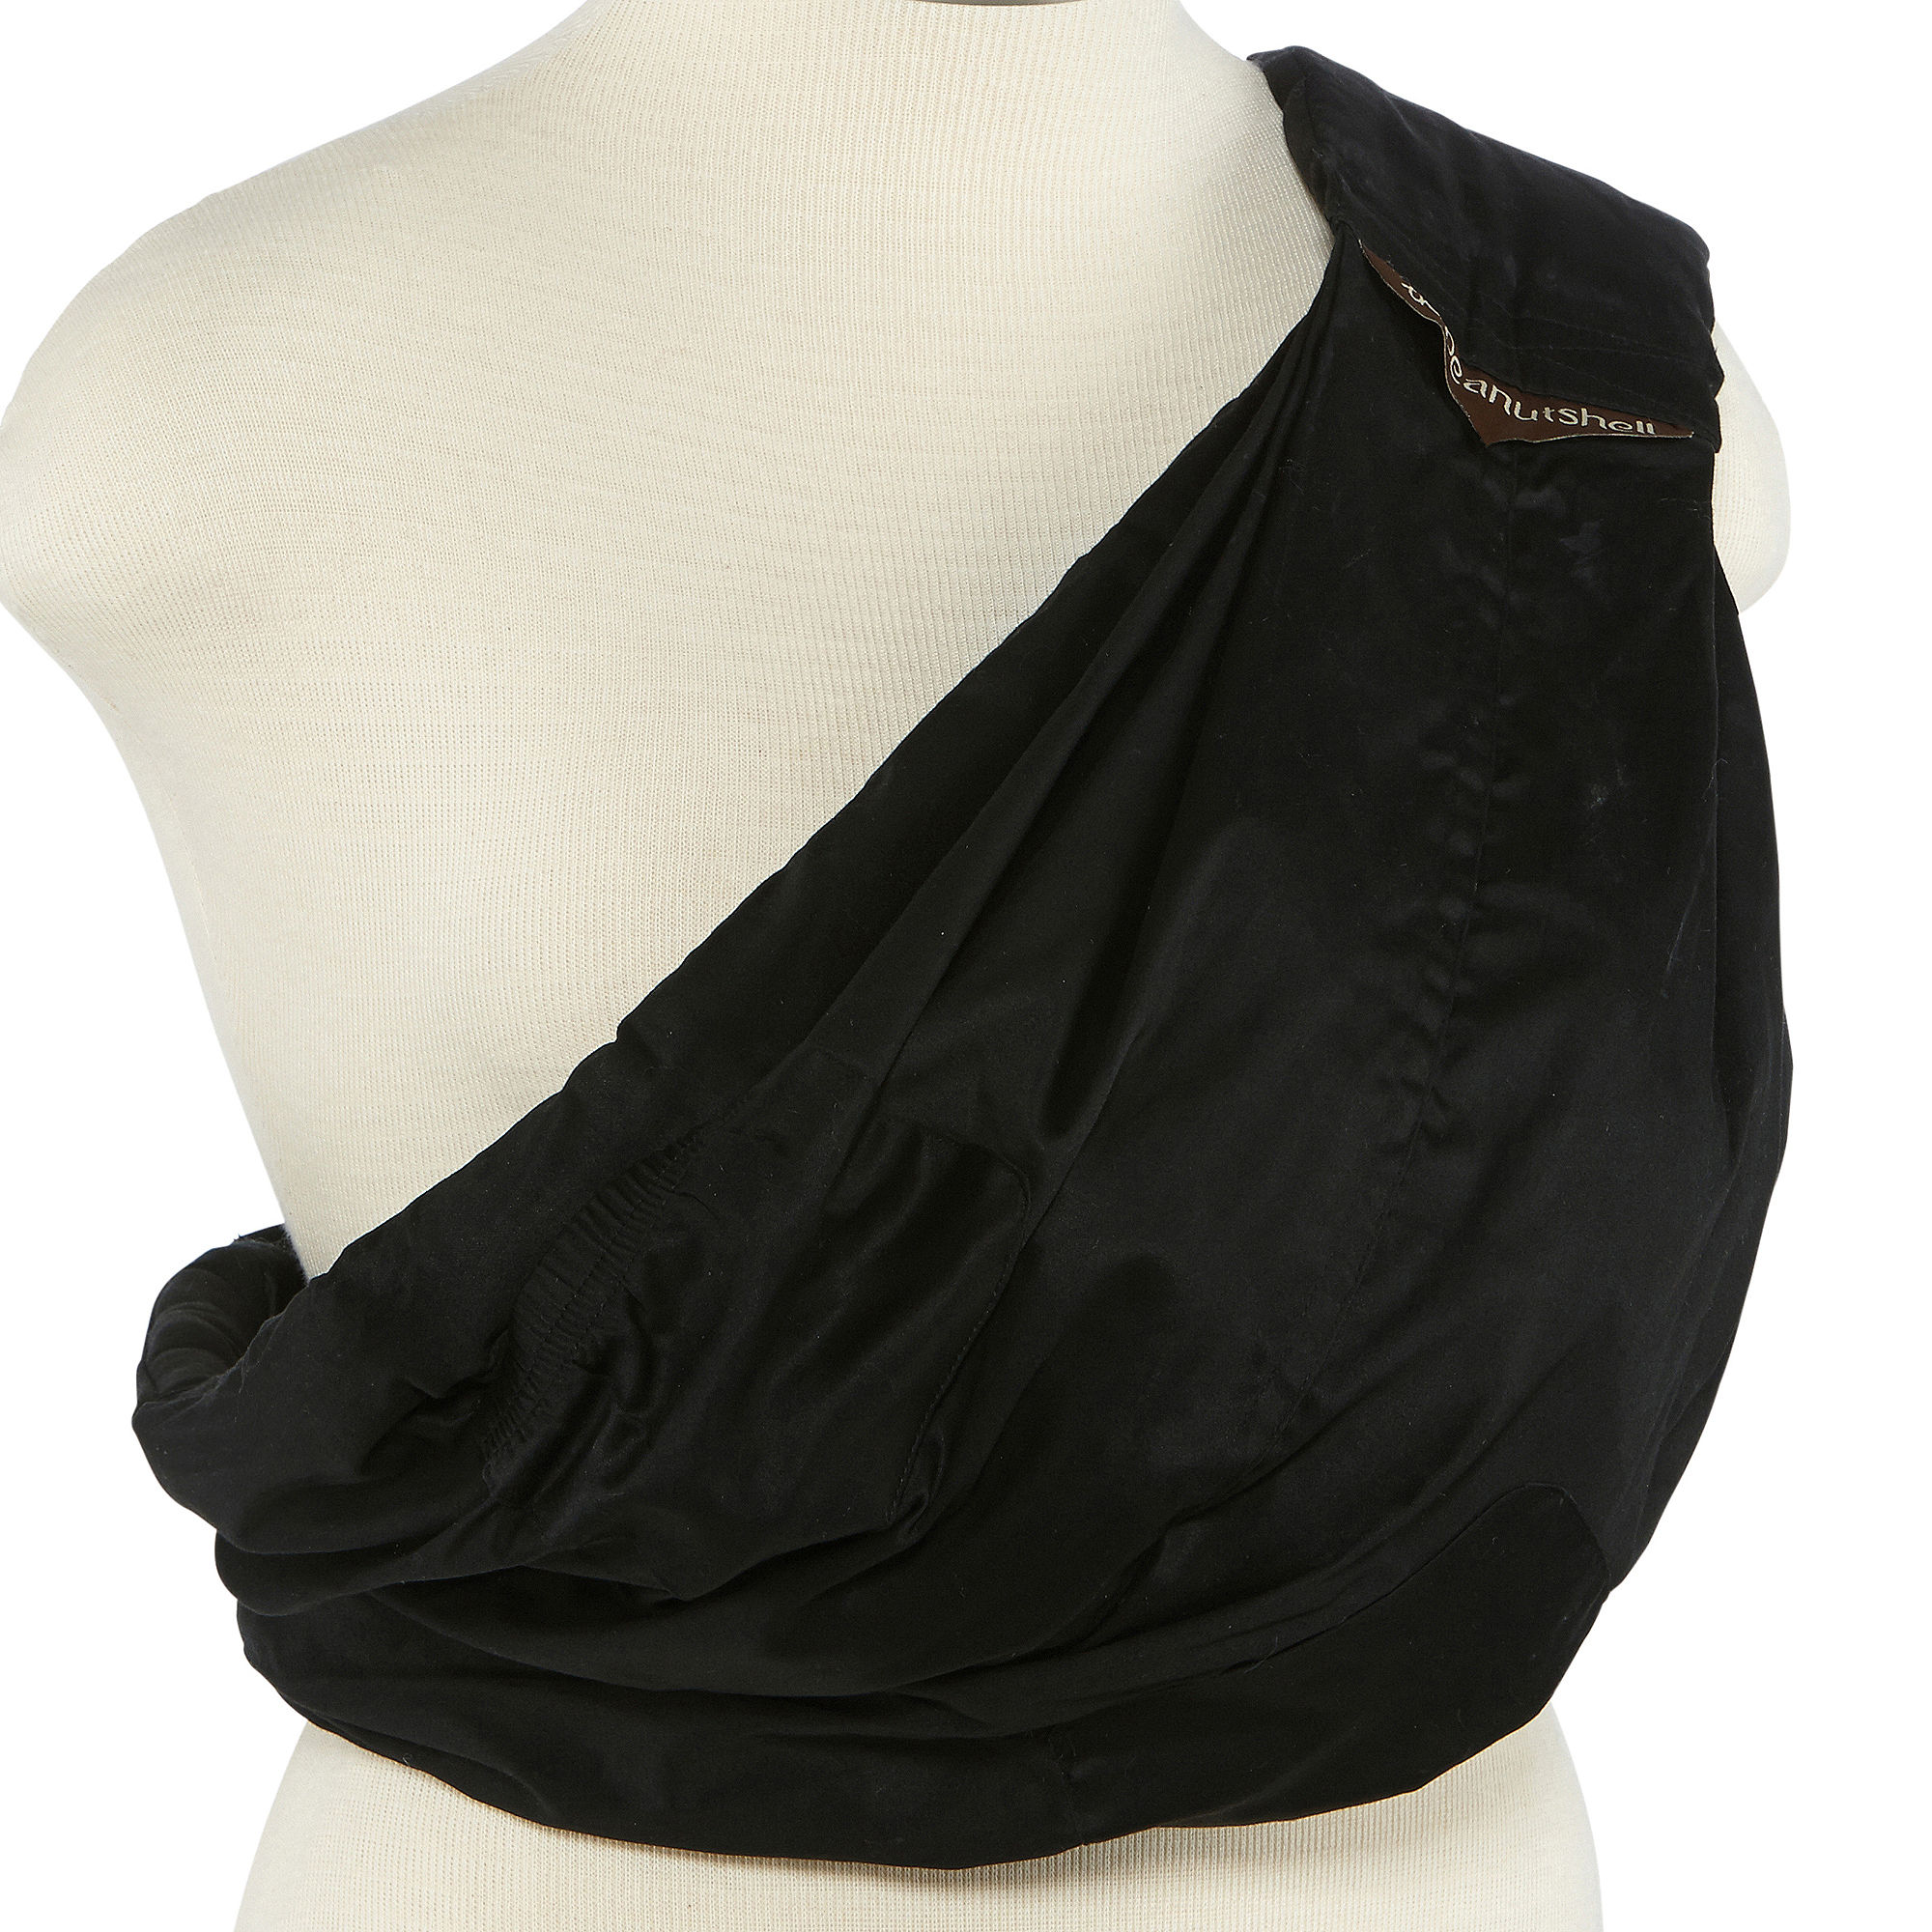 The Peanut Shell Adjustable Baby Sling - Black